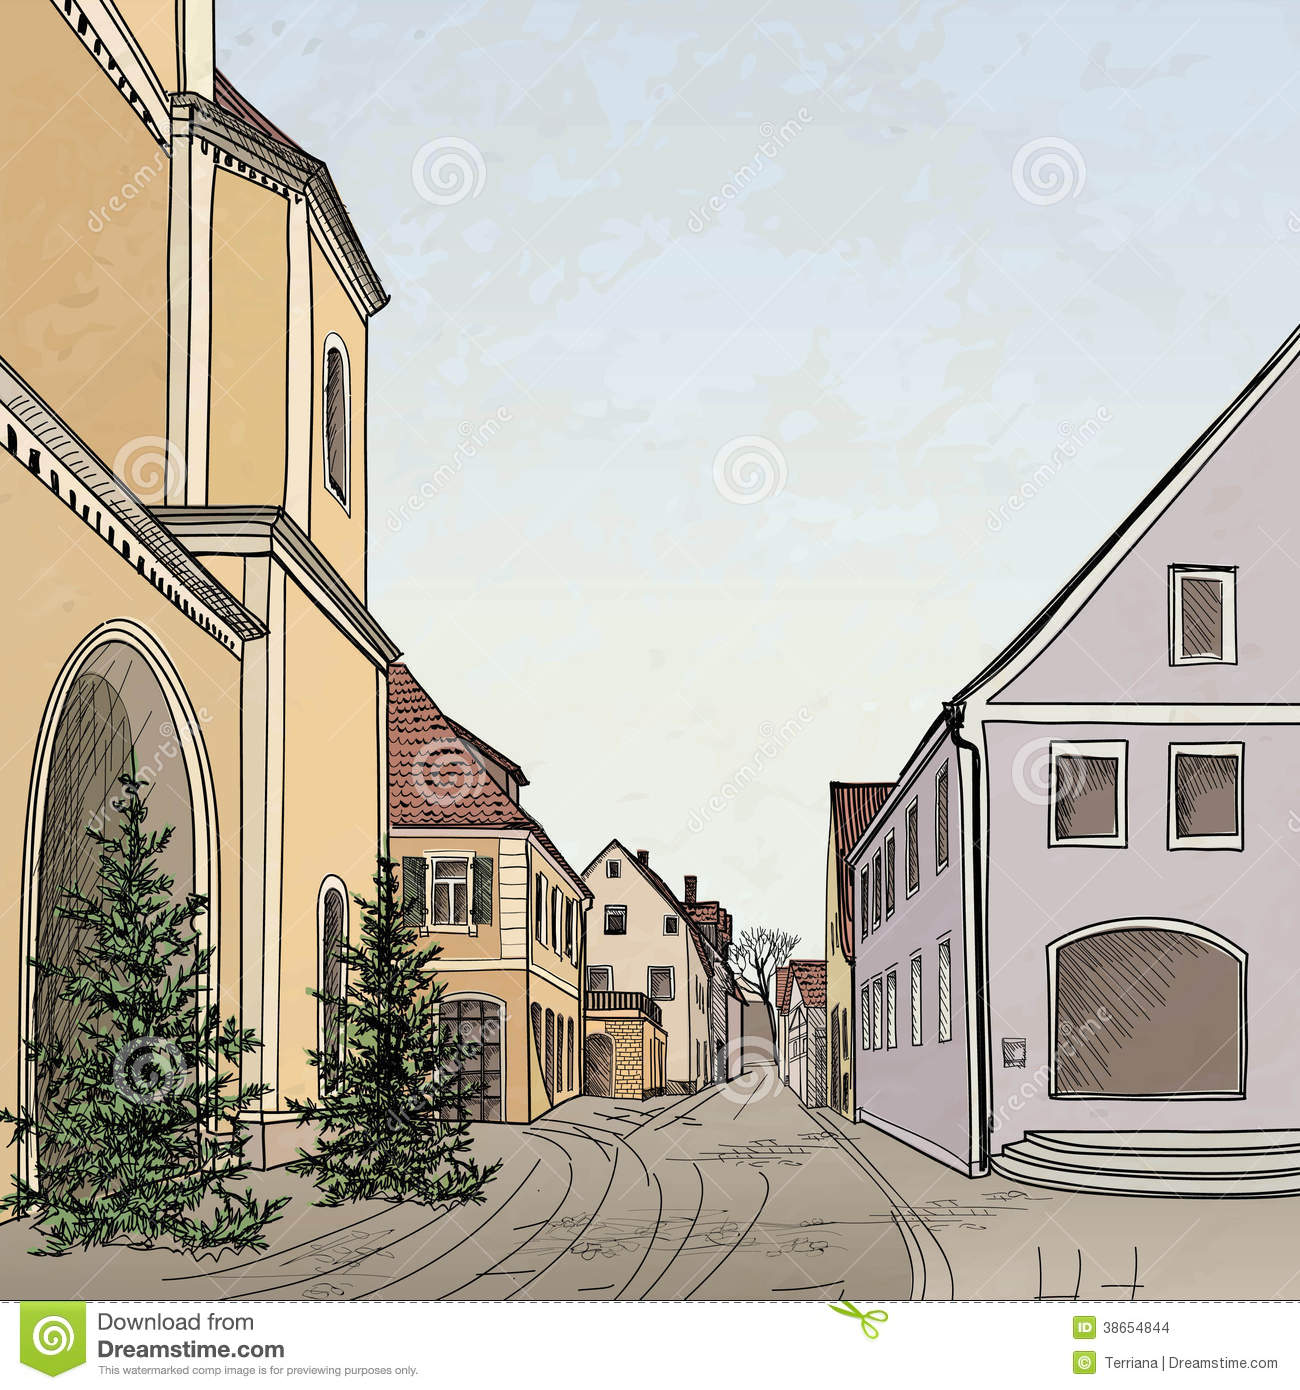 clip art city street - photo #26